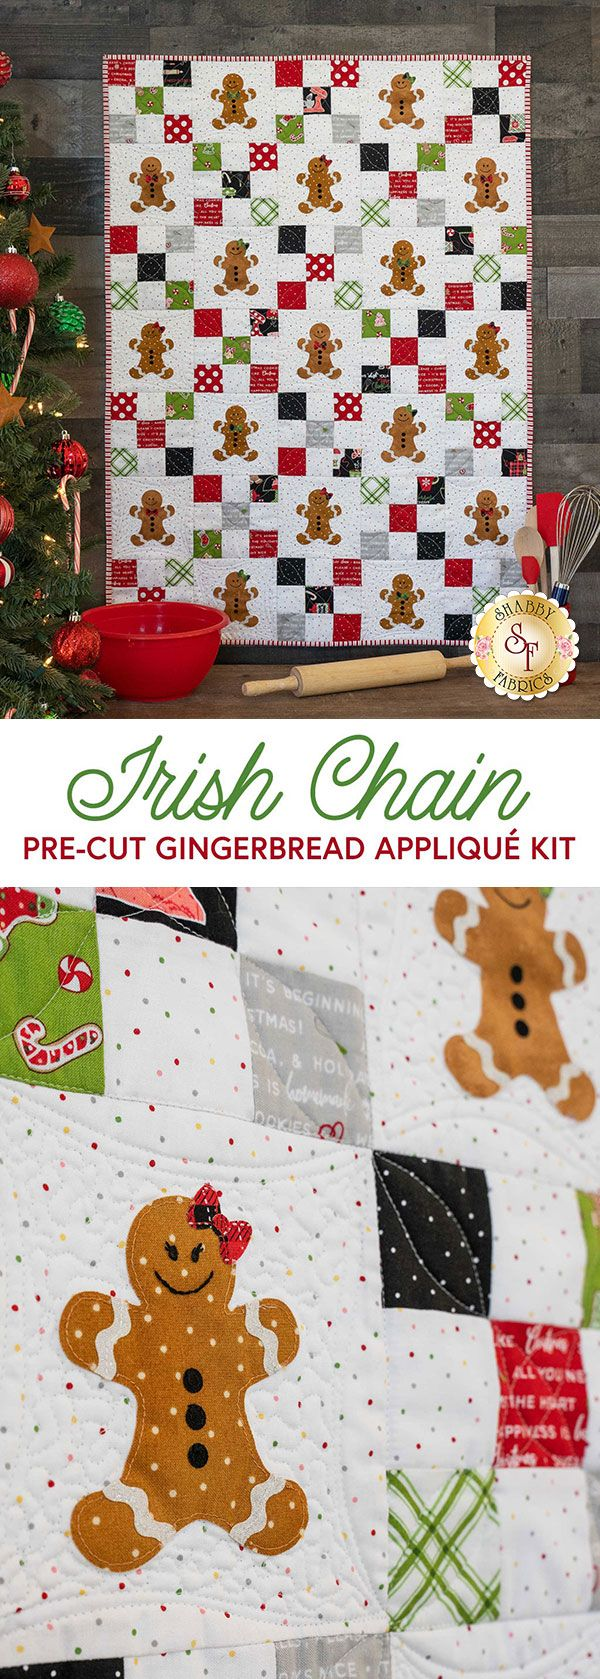 Irish Chain Precut Gingerbread Appliqué Kit - We Whisk You A Merry Christmas -   18 fabric crafts For Boys christmas gifts ideas